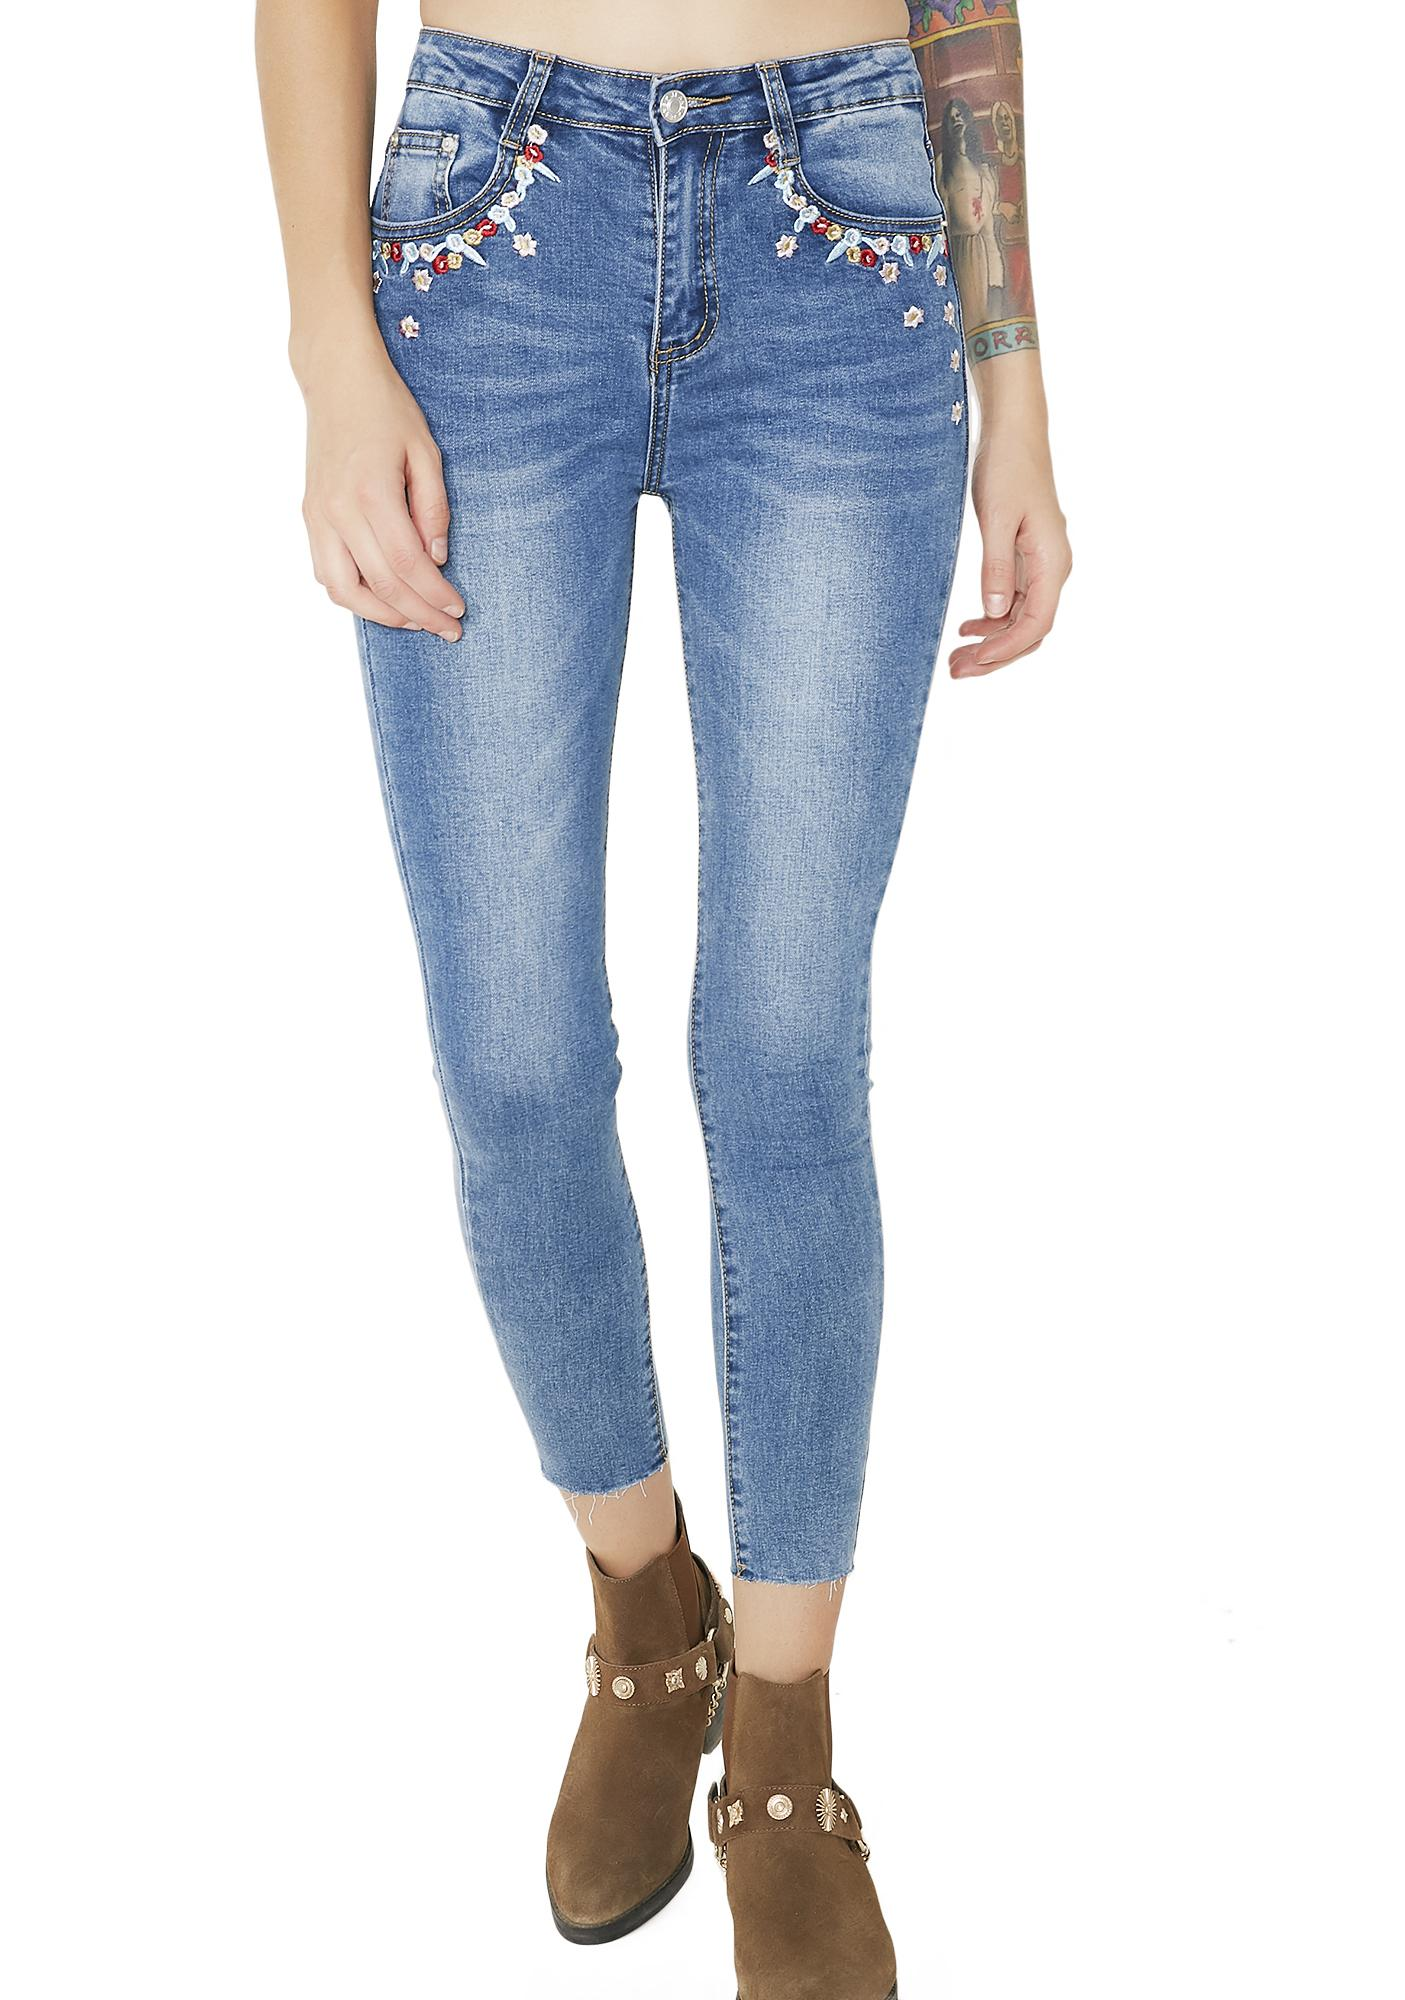 Once Upon A Dream Embroidered Jeans